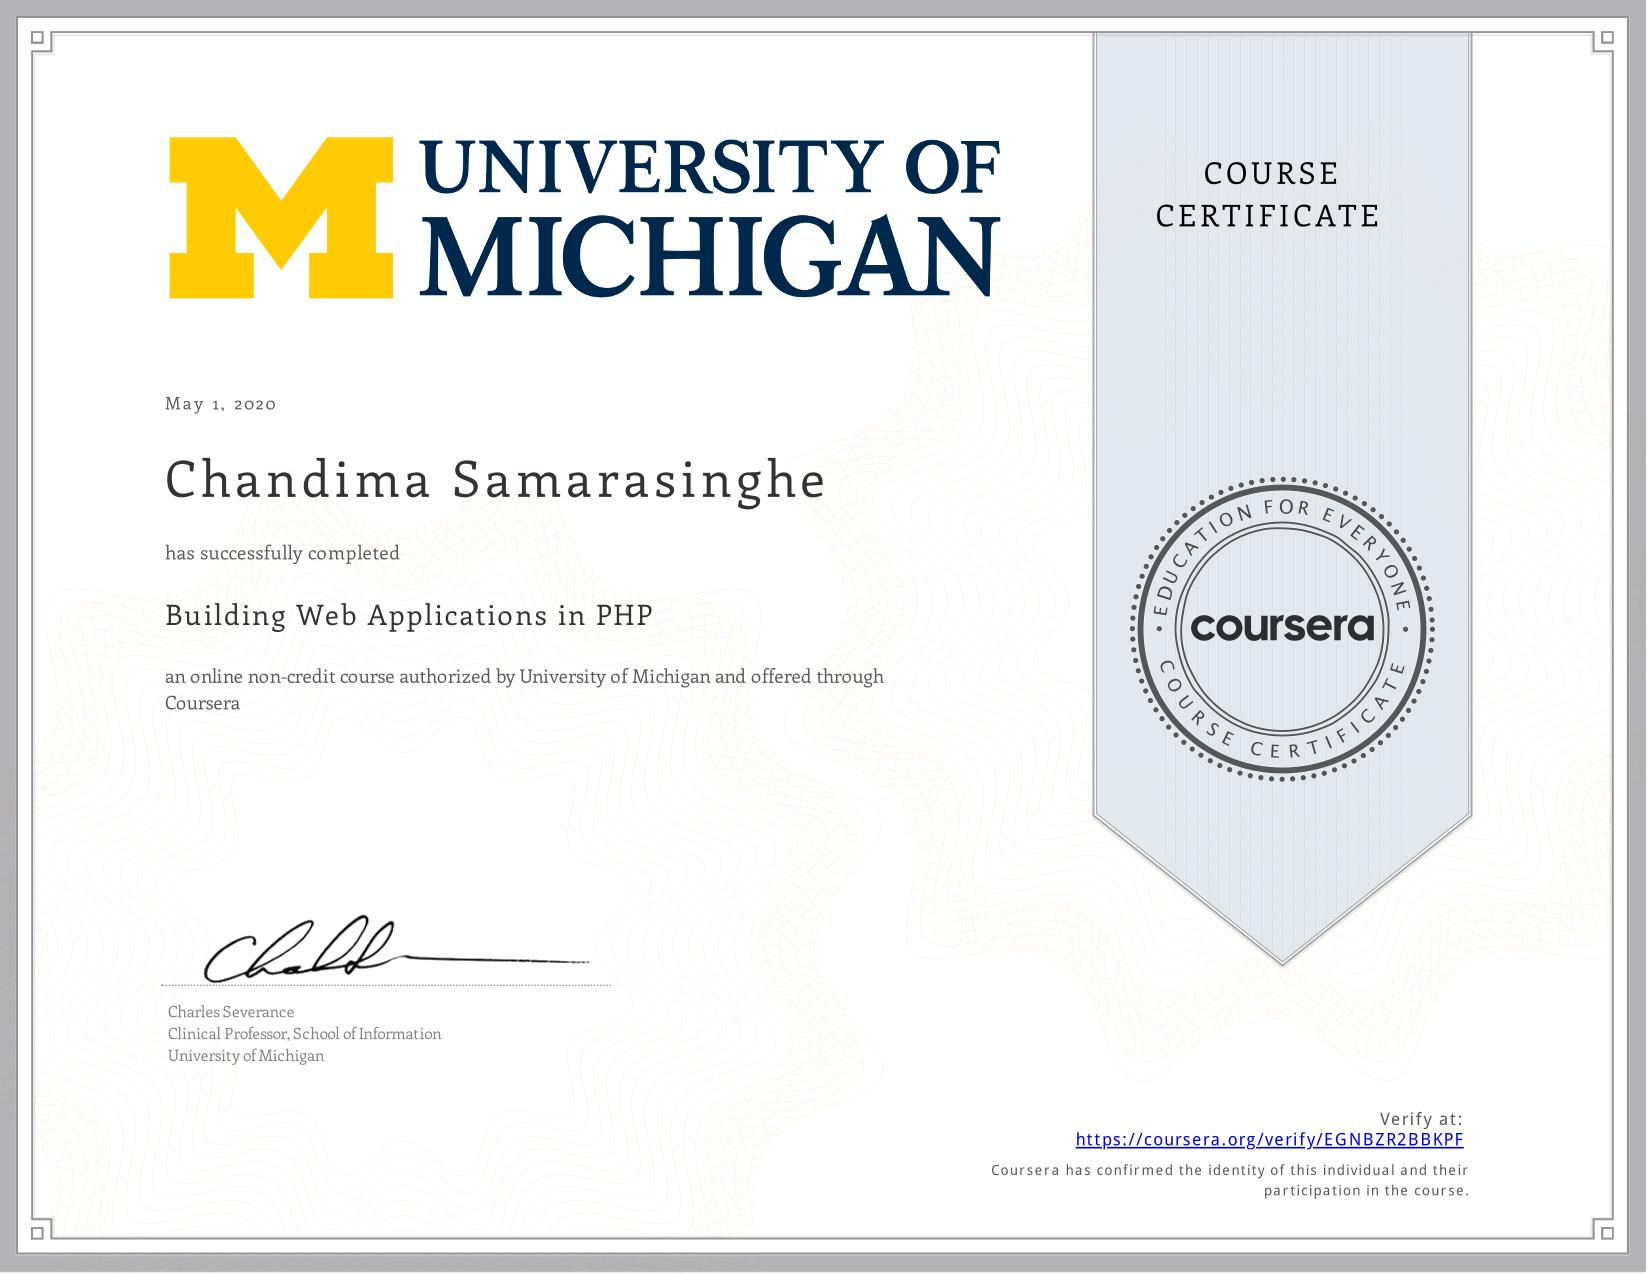 View certificate for Chandima Samarasinghe, Building Web Applications in PHP, an online non-credit course authorized by University of Michigan and offered through Coursera